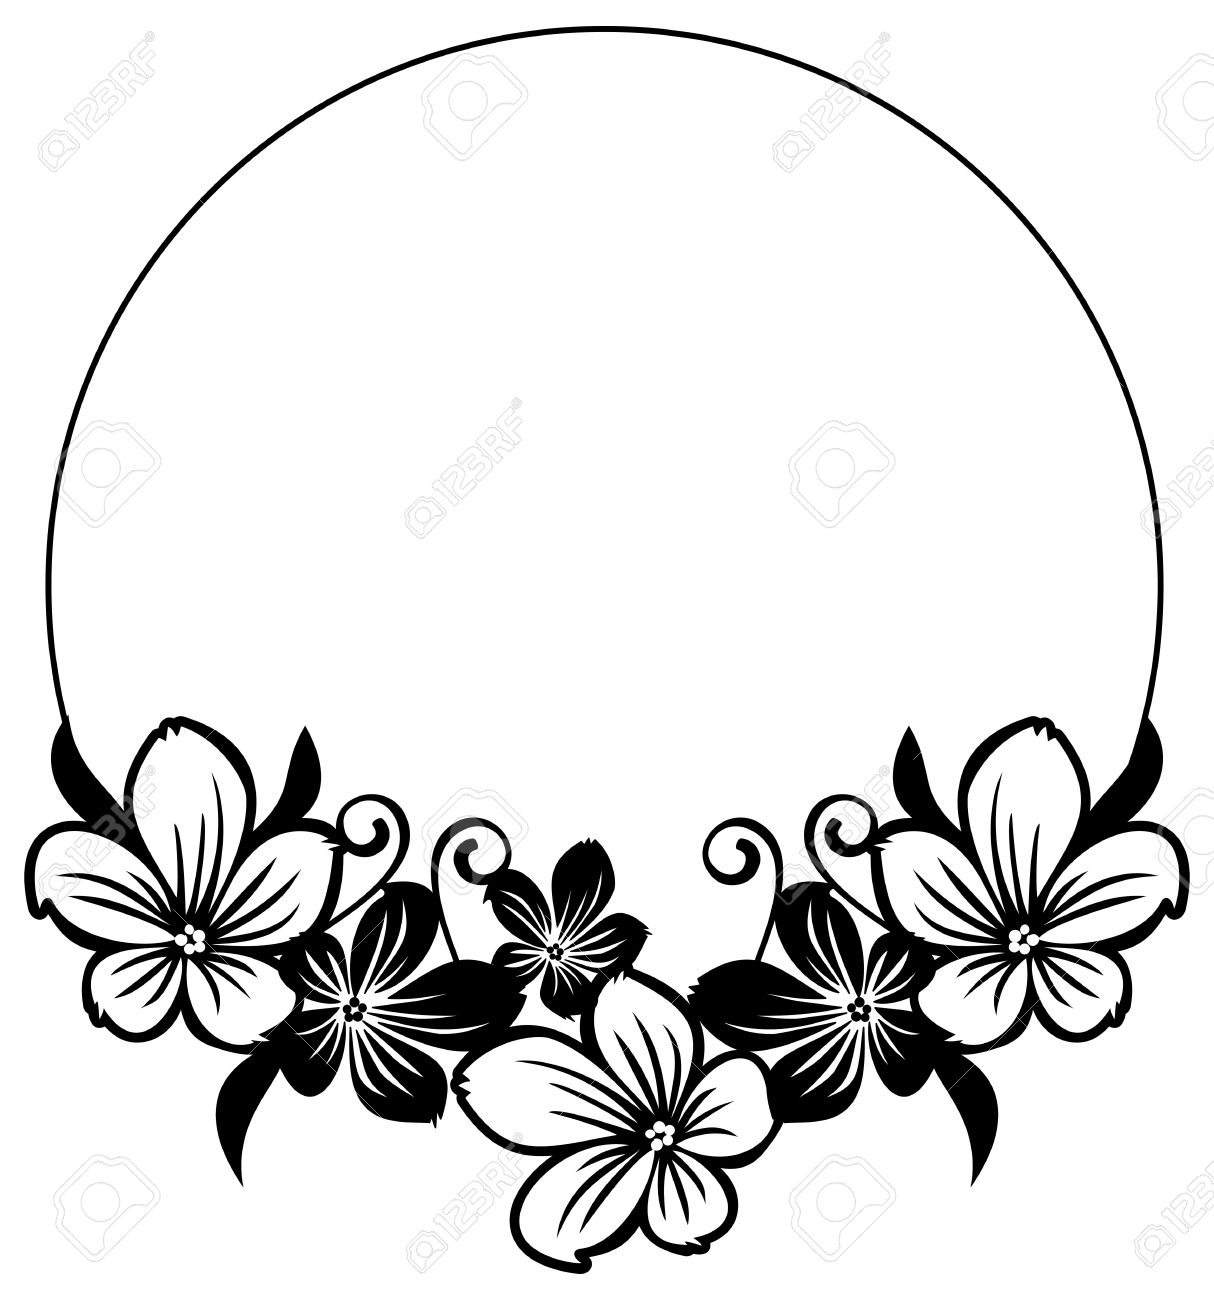 black and white round frame with abstract flowers silhouettes rh 123rf com clip art victorian ladies clip art vector free download